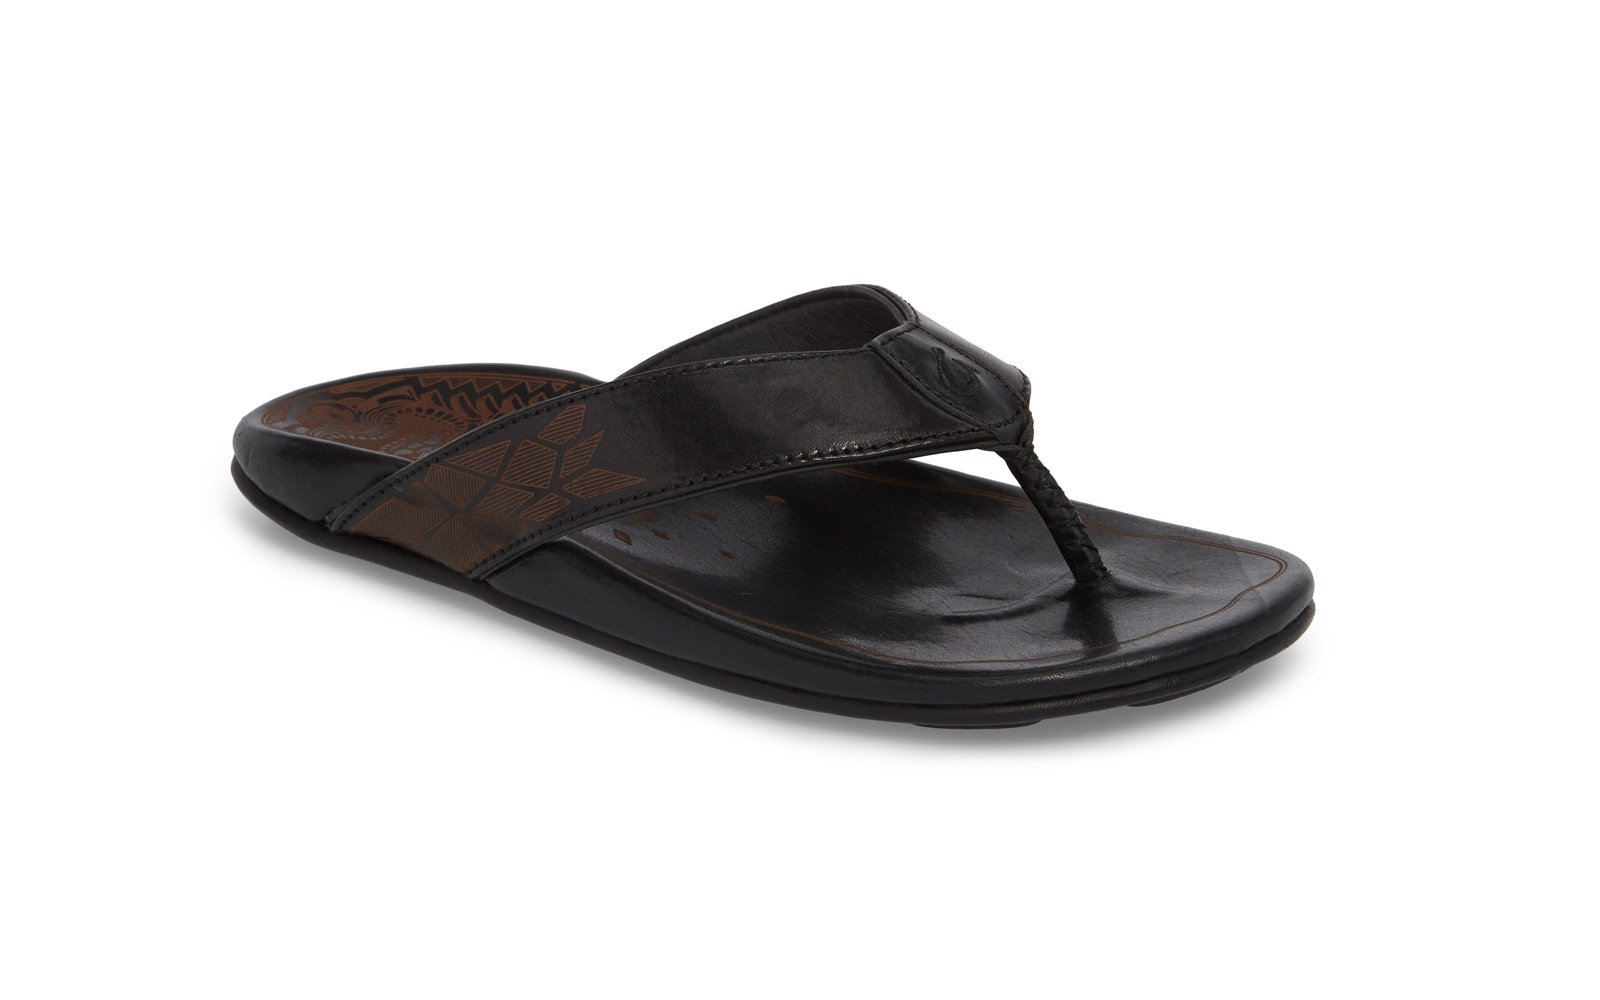 69b700dbfb457f The Best Men s Sandals to Pack for Your Next Vacation